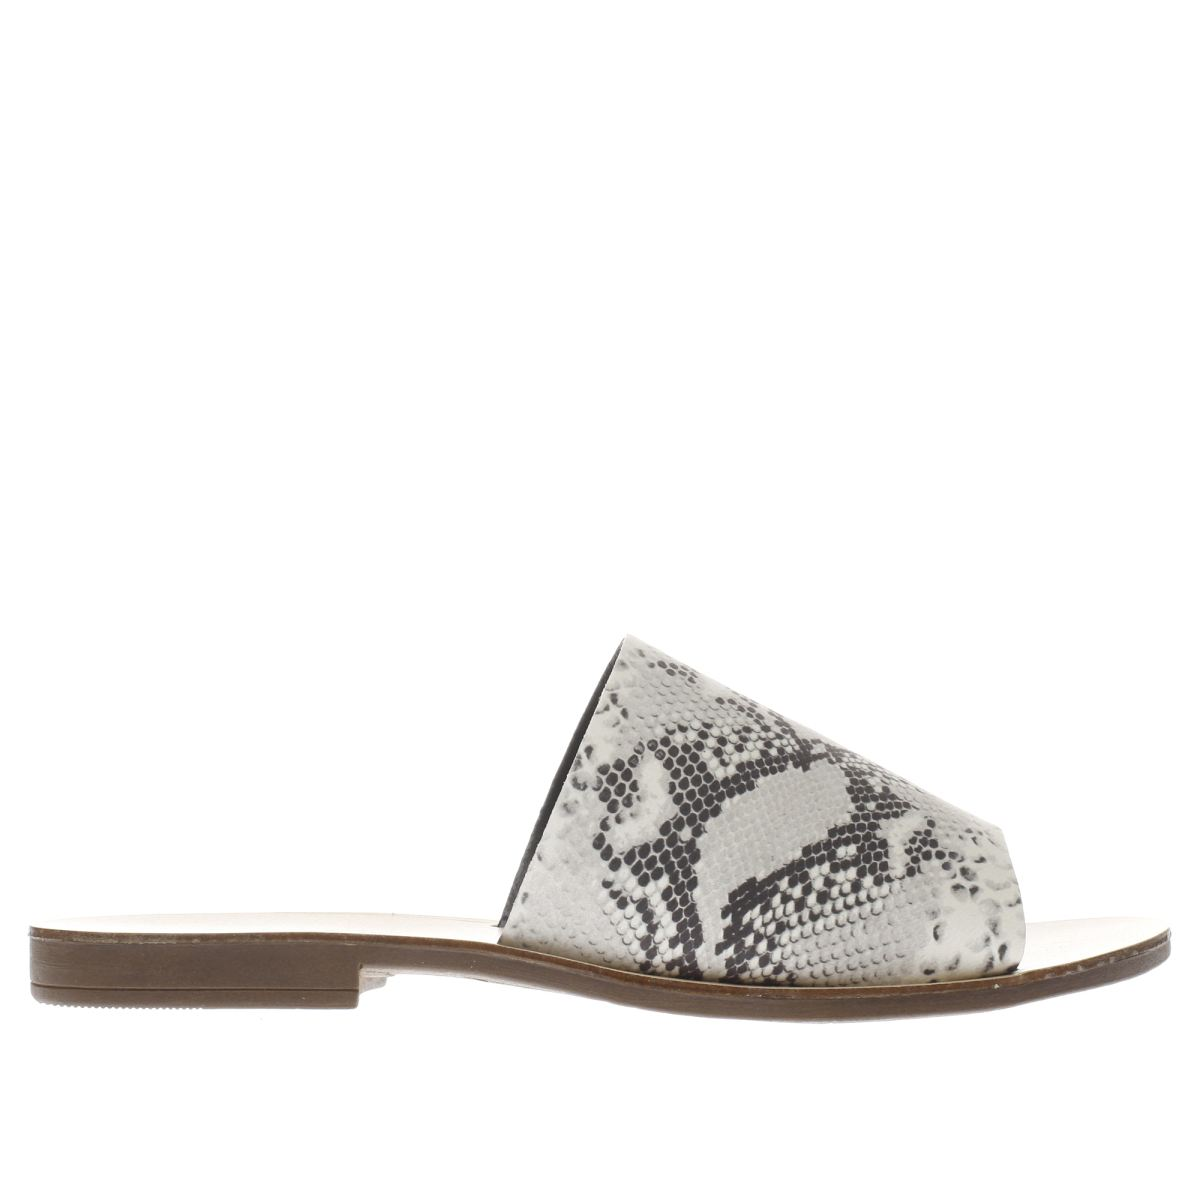 schuh grey & black bali snake sandals